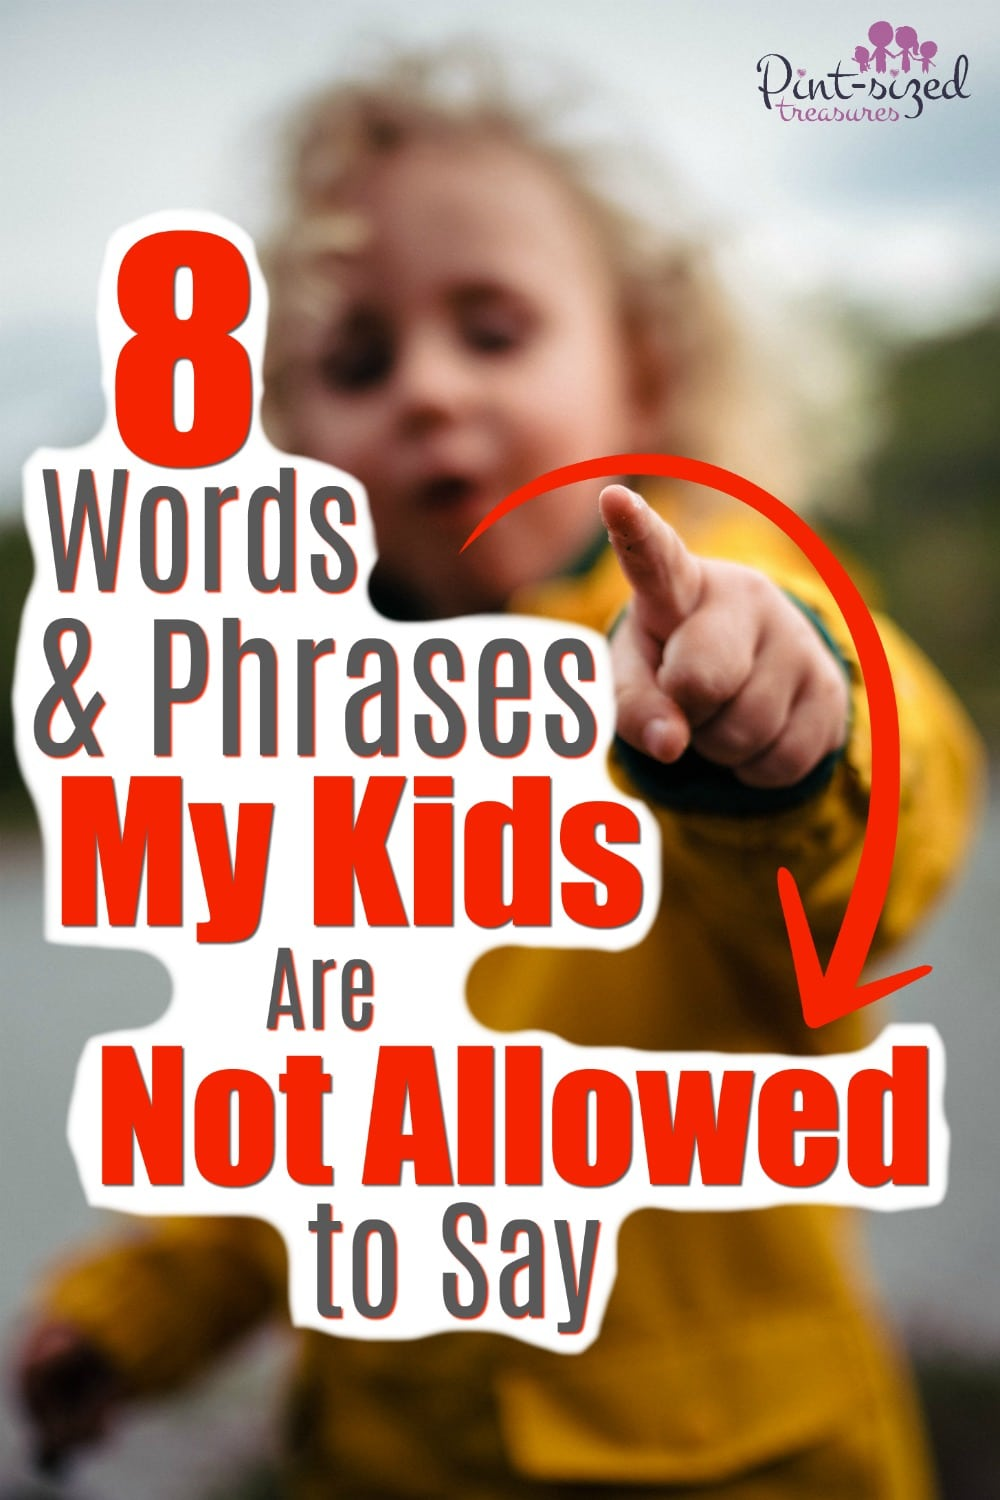 Even though these 8 words and phrases are super popular among kids, our kids are not allowed to say them. These words are not allowed in our home and here are our reasons! A must-read for parents who are intentional about helping their kids develop good, moral character!